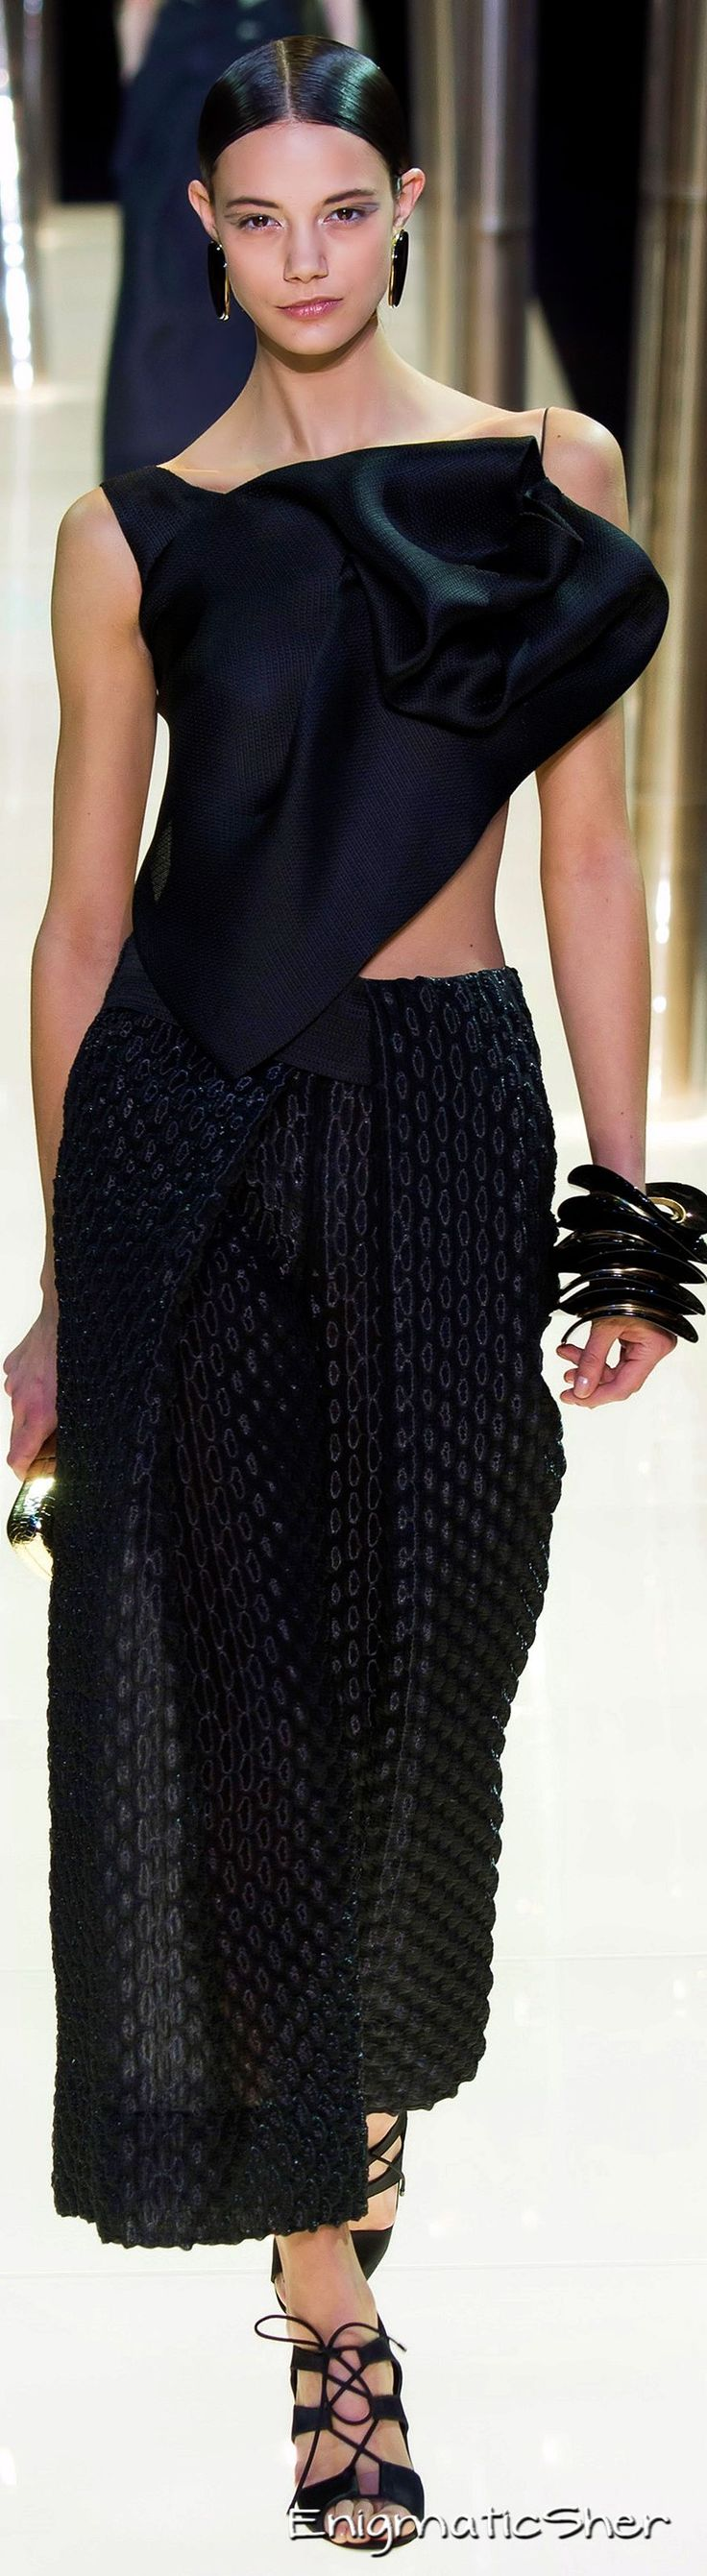 Giorgio Armani Privé Haute Couture Spring Summer 2015 with <3 from JDzigner www.jdzigner.com